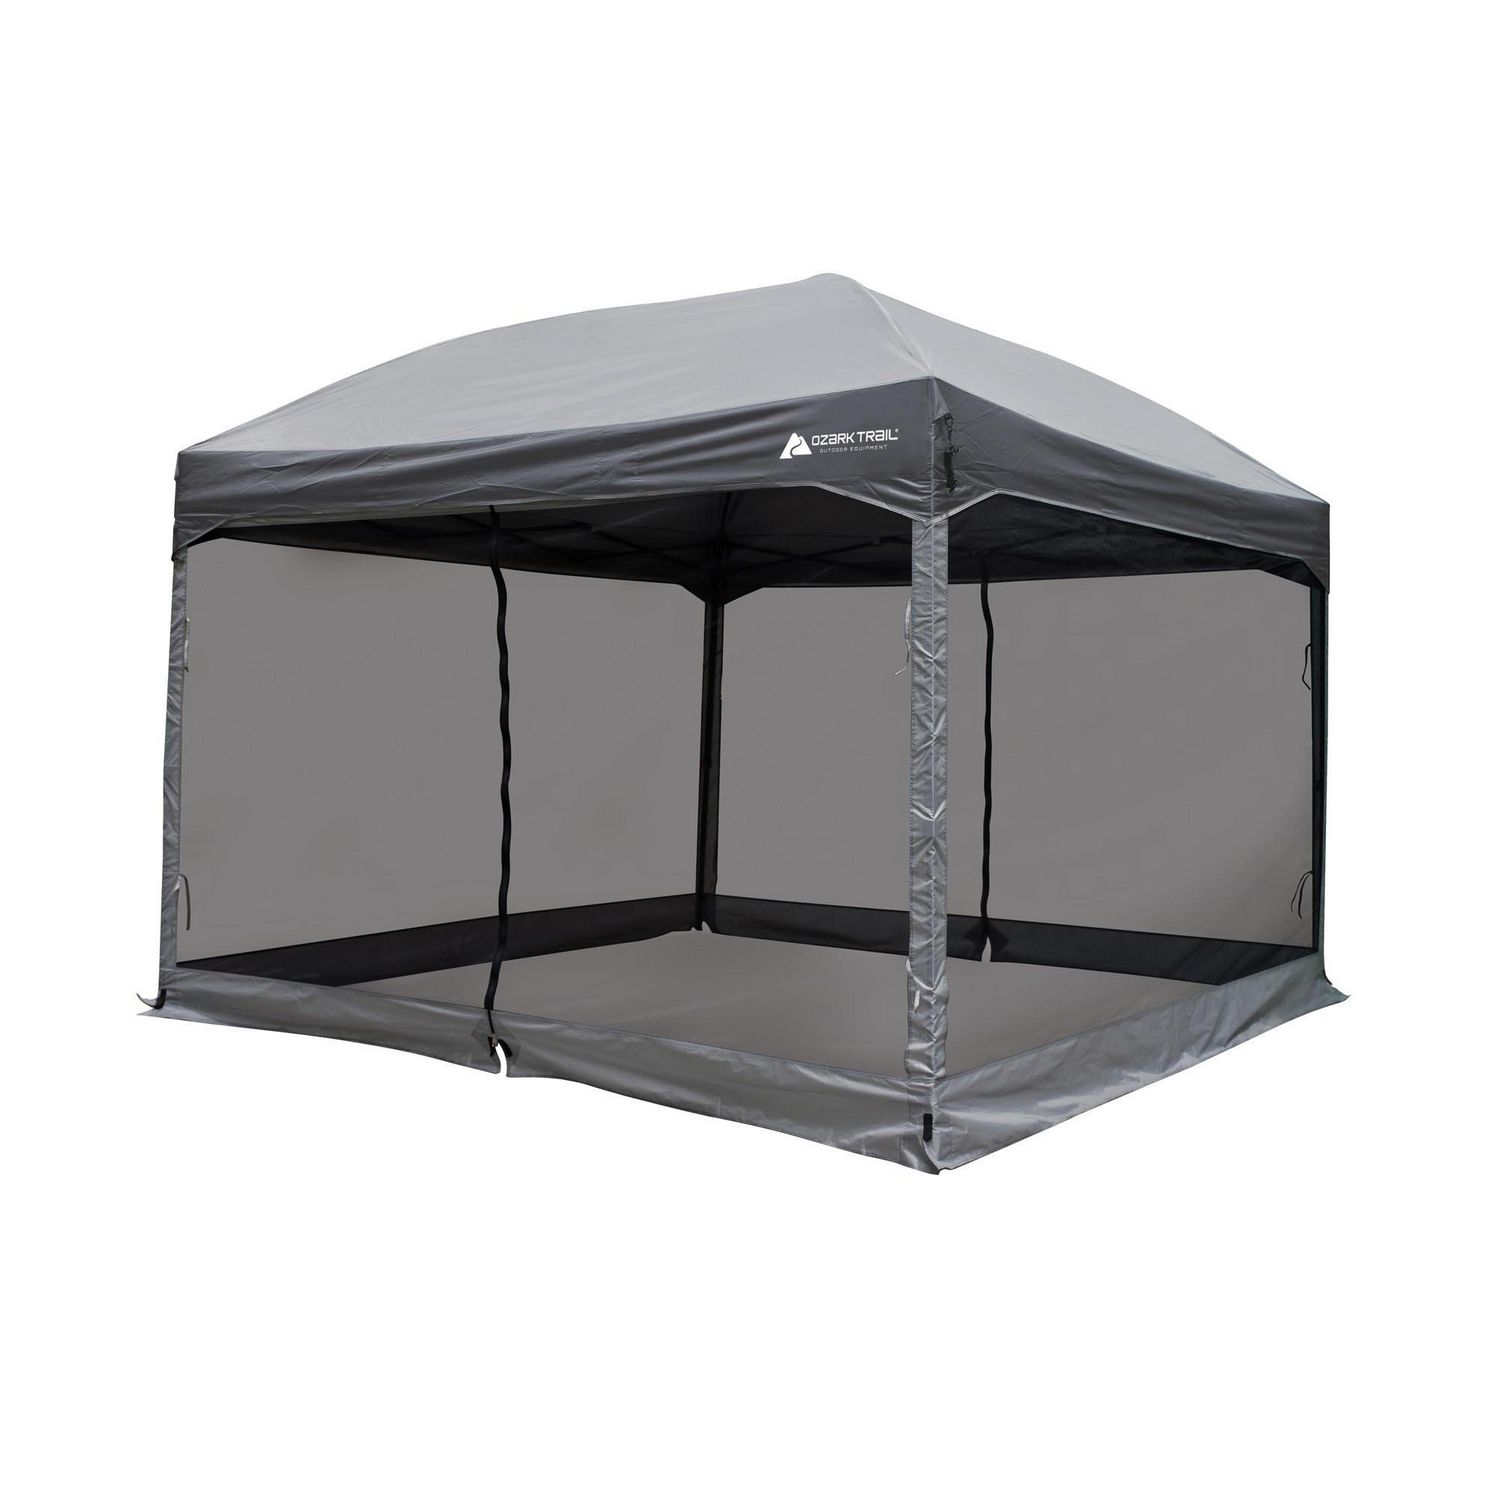 Ozark Trail 11 X 11 Straight Wall Instant Canopy With Full Mesh